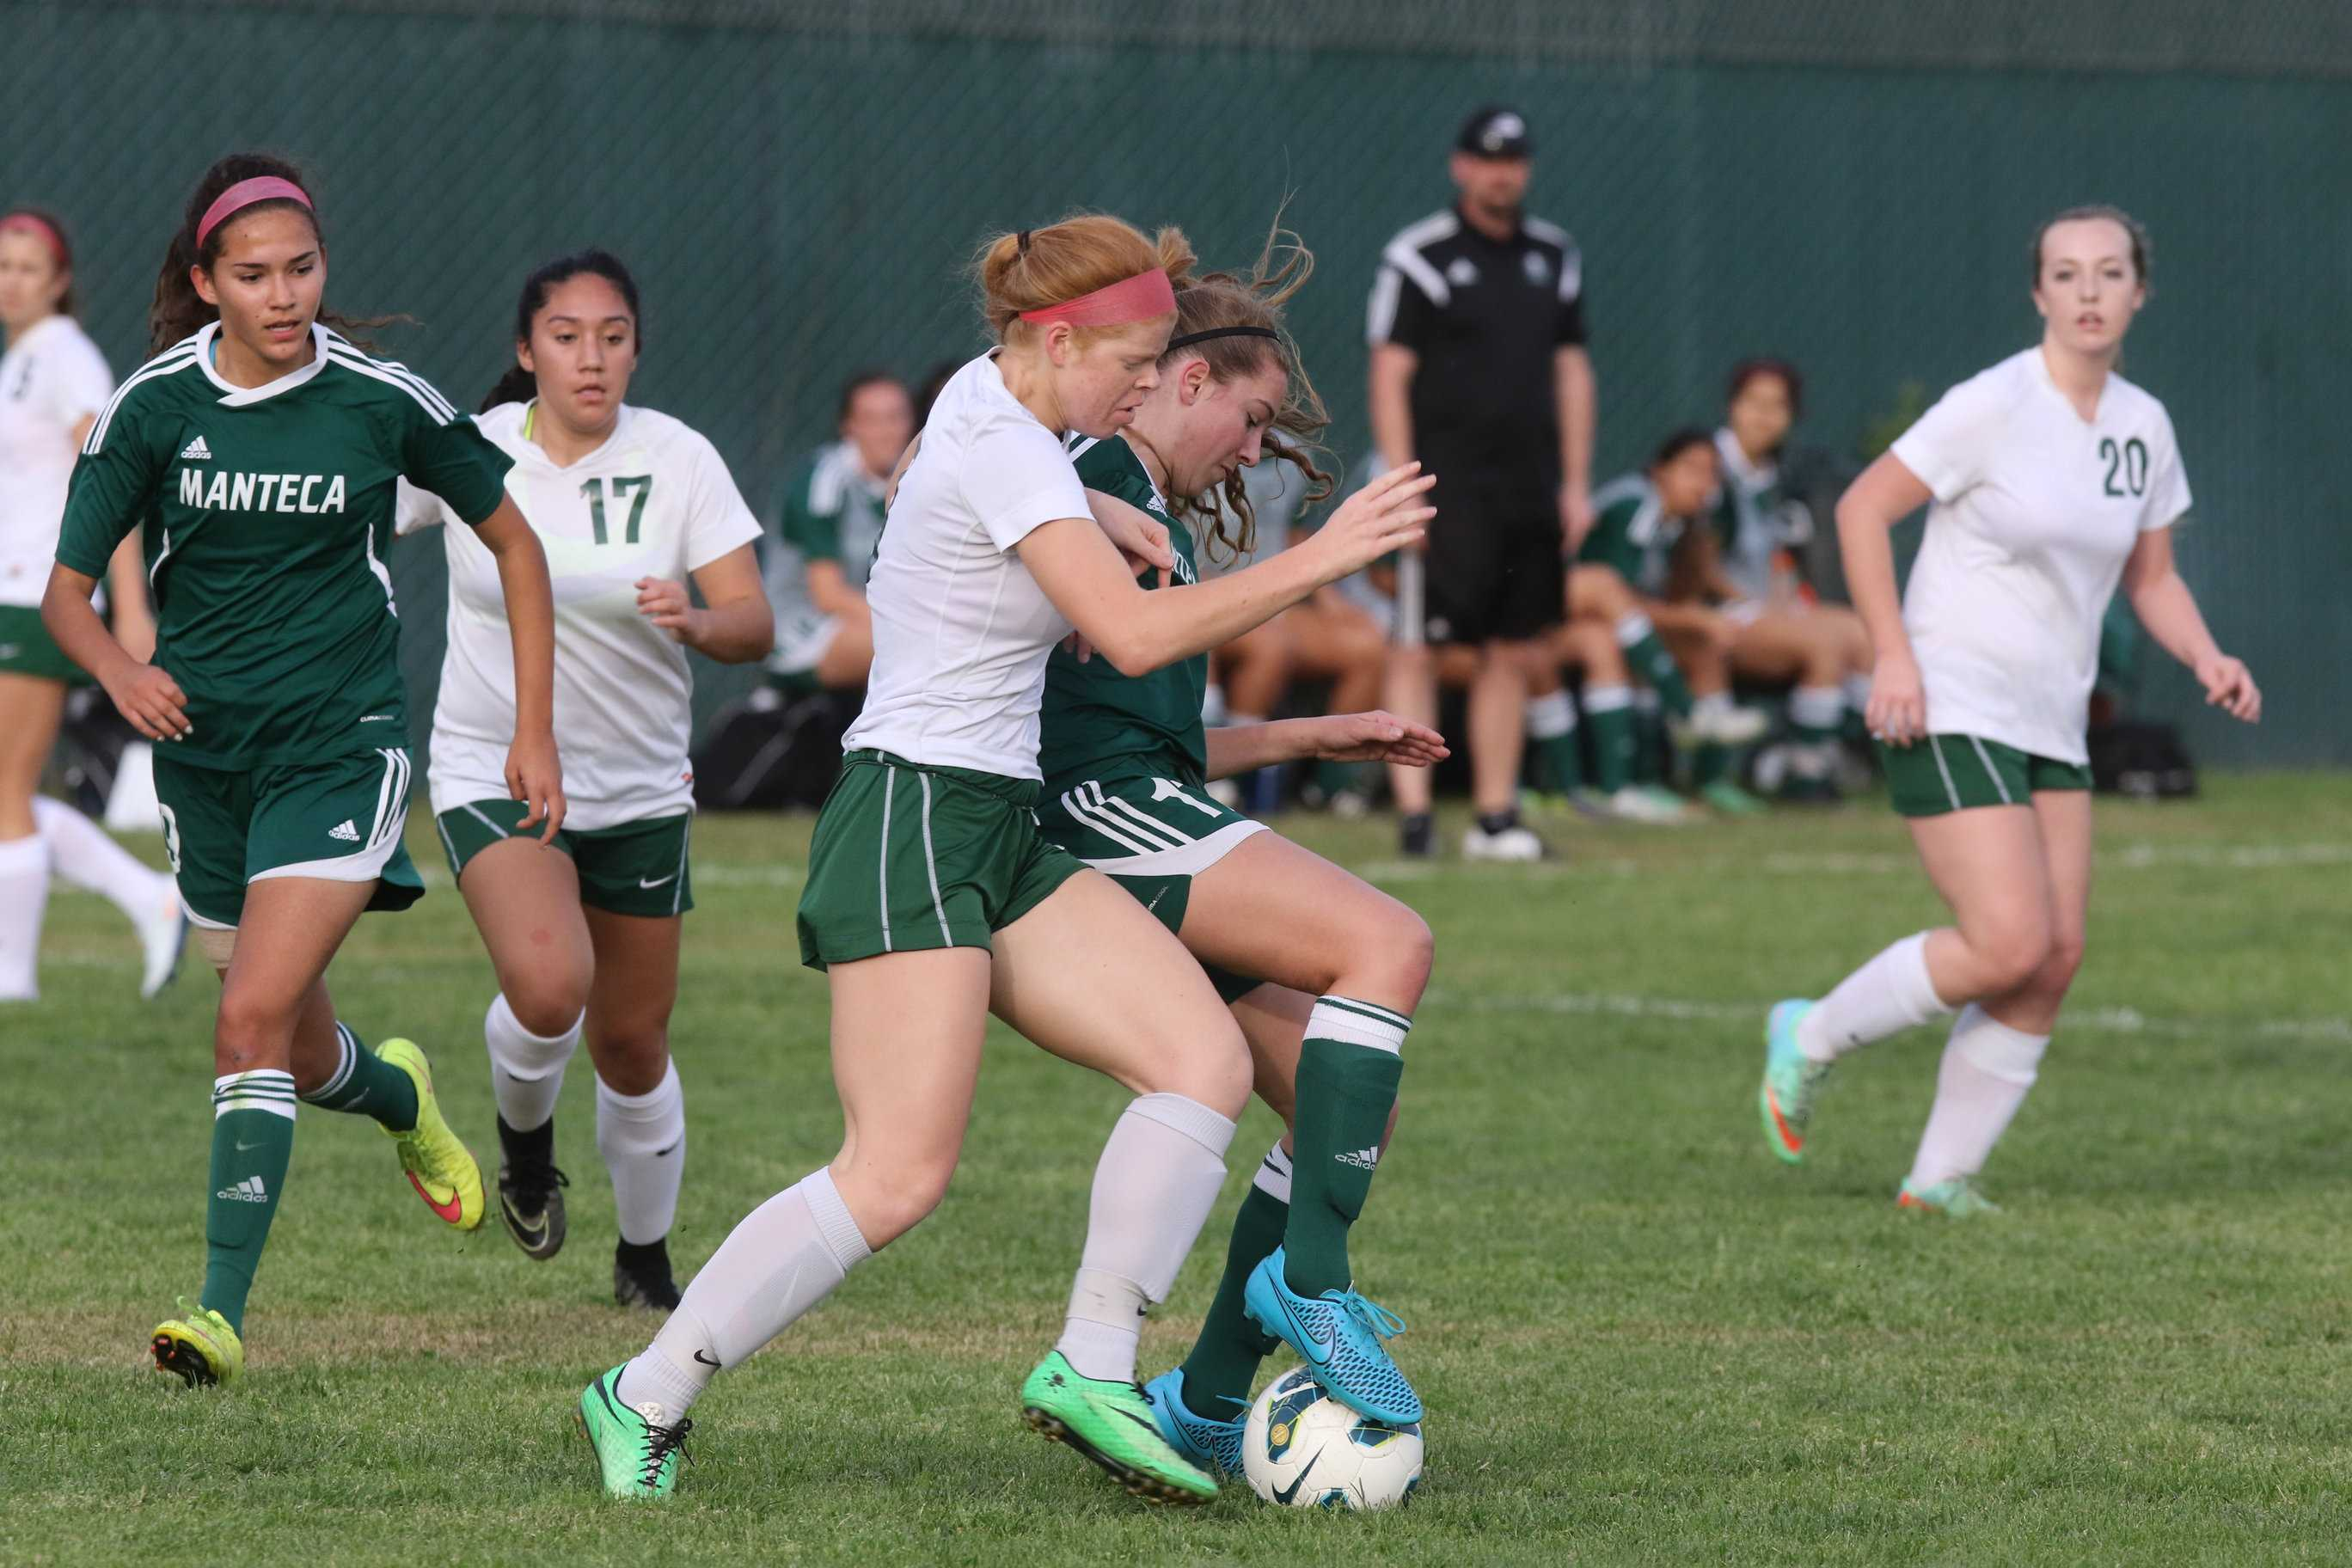 Captain Jacqui Frizzi passes the ball during game against Lodi.